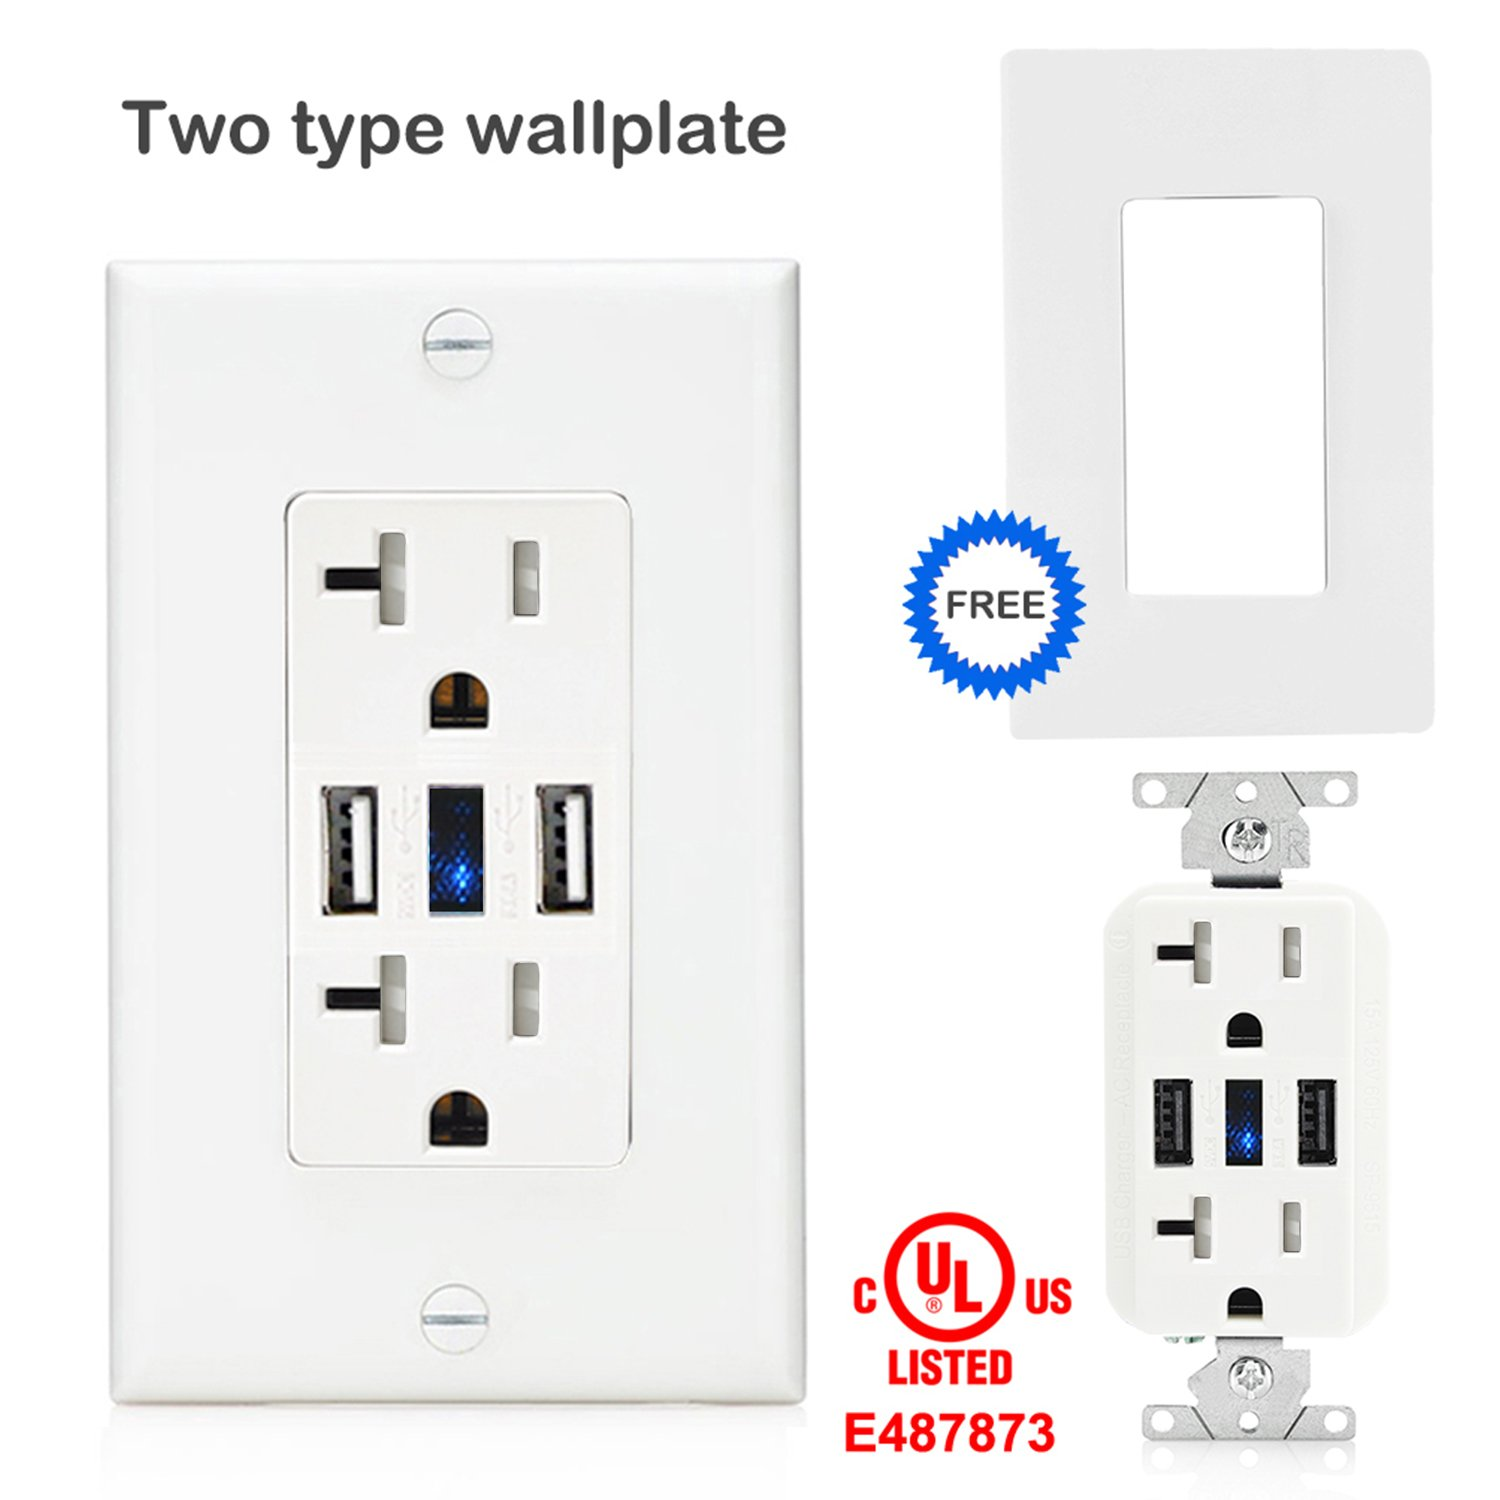 LEISHEN Smart Ultra High Speed USB Charger Outlet 20 Amp TR Receptacle with LED lndicator and Screwless Wall Plates White TWO pieces Faceplates Buy One Get One